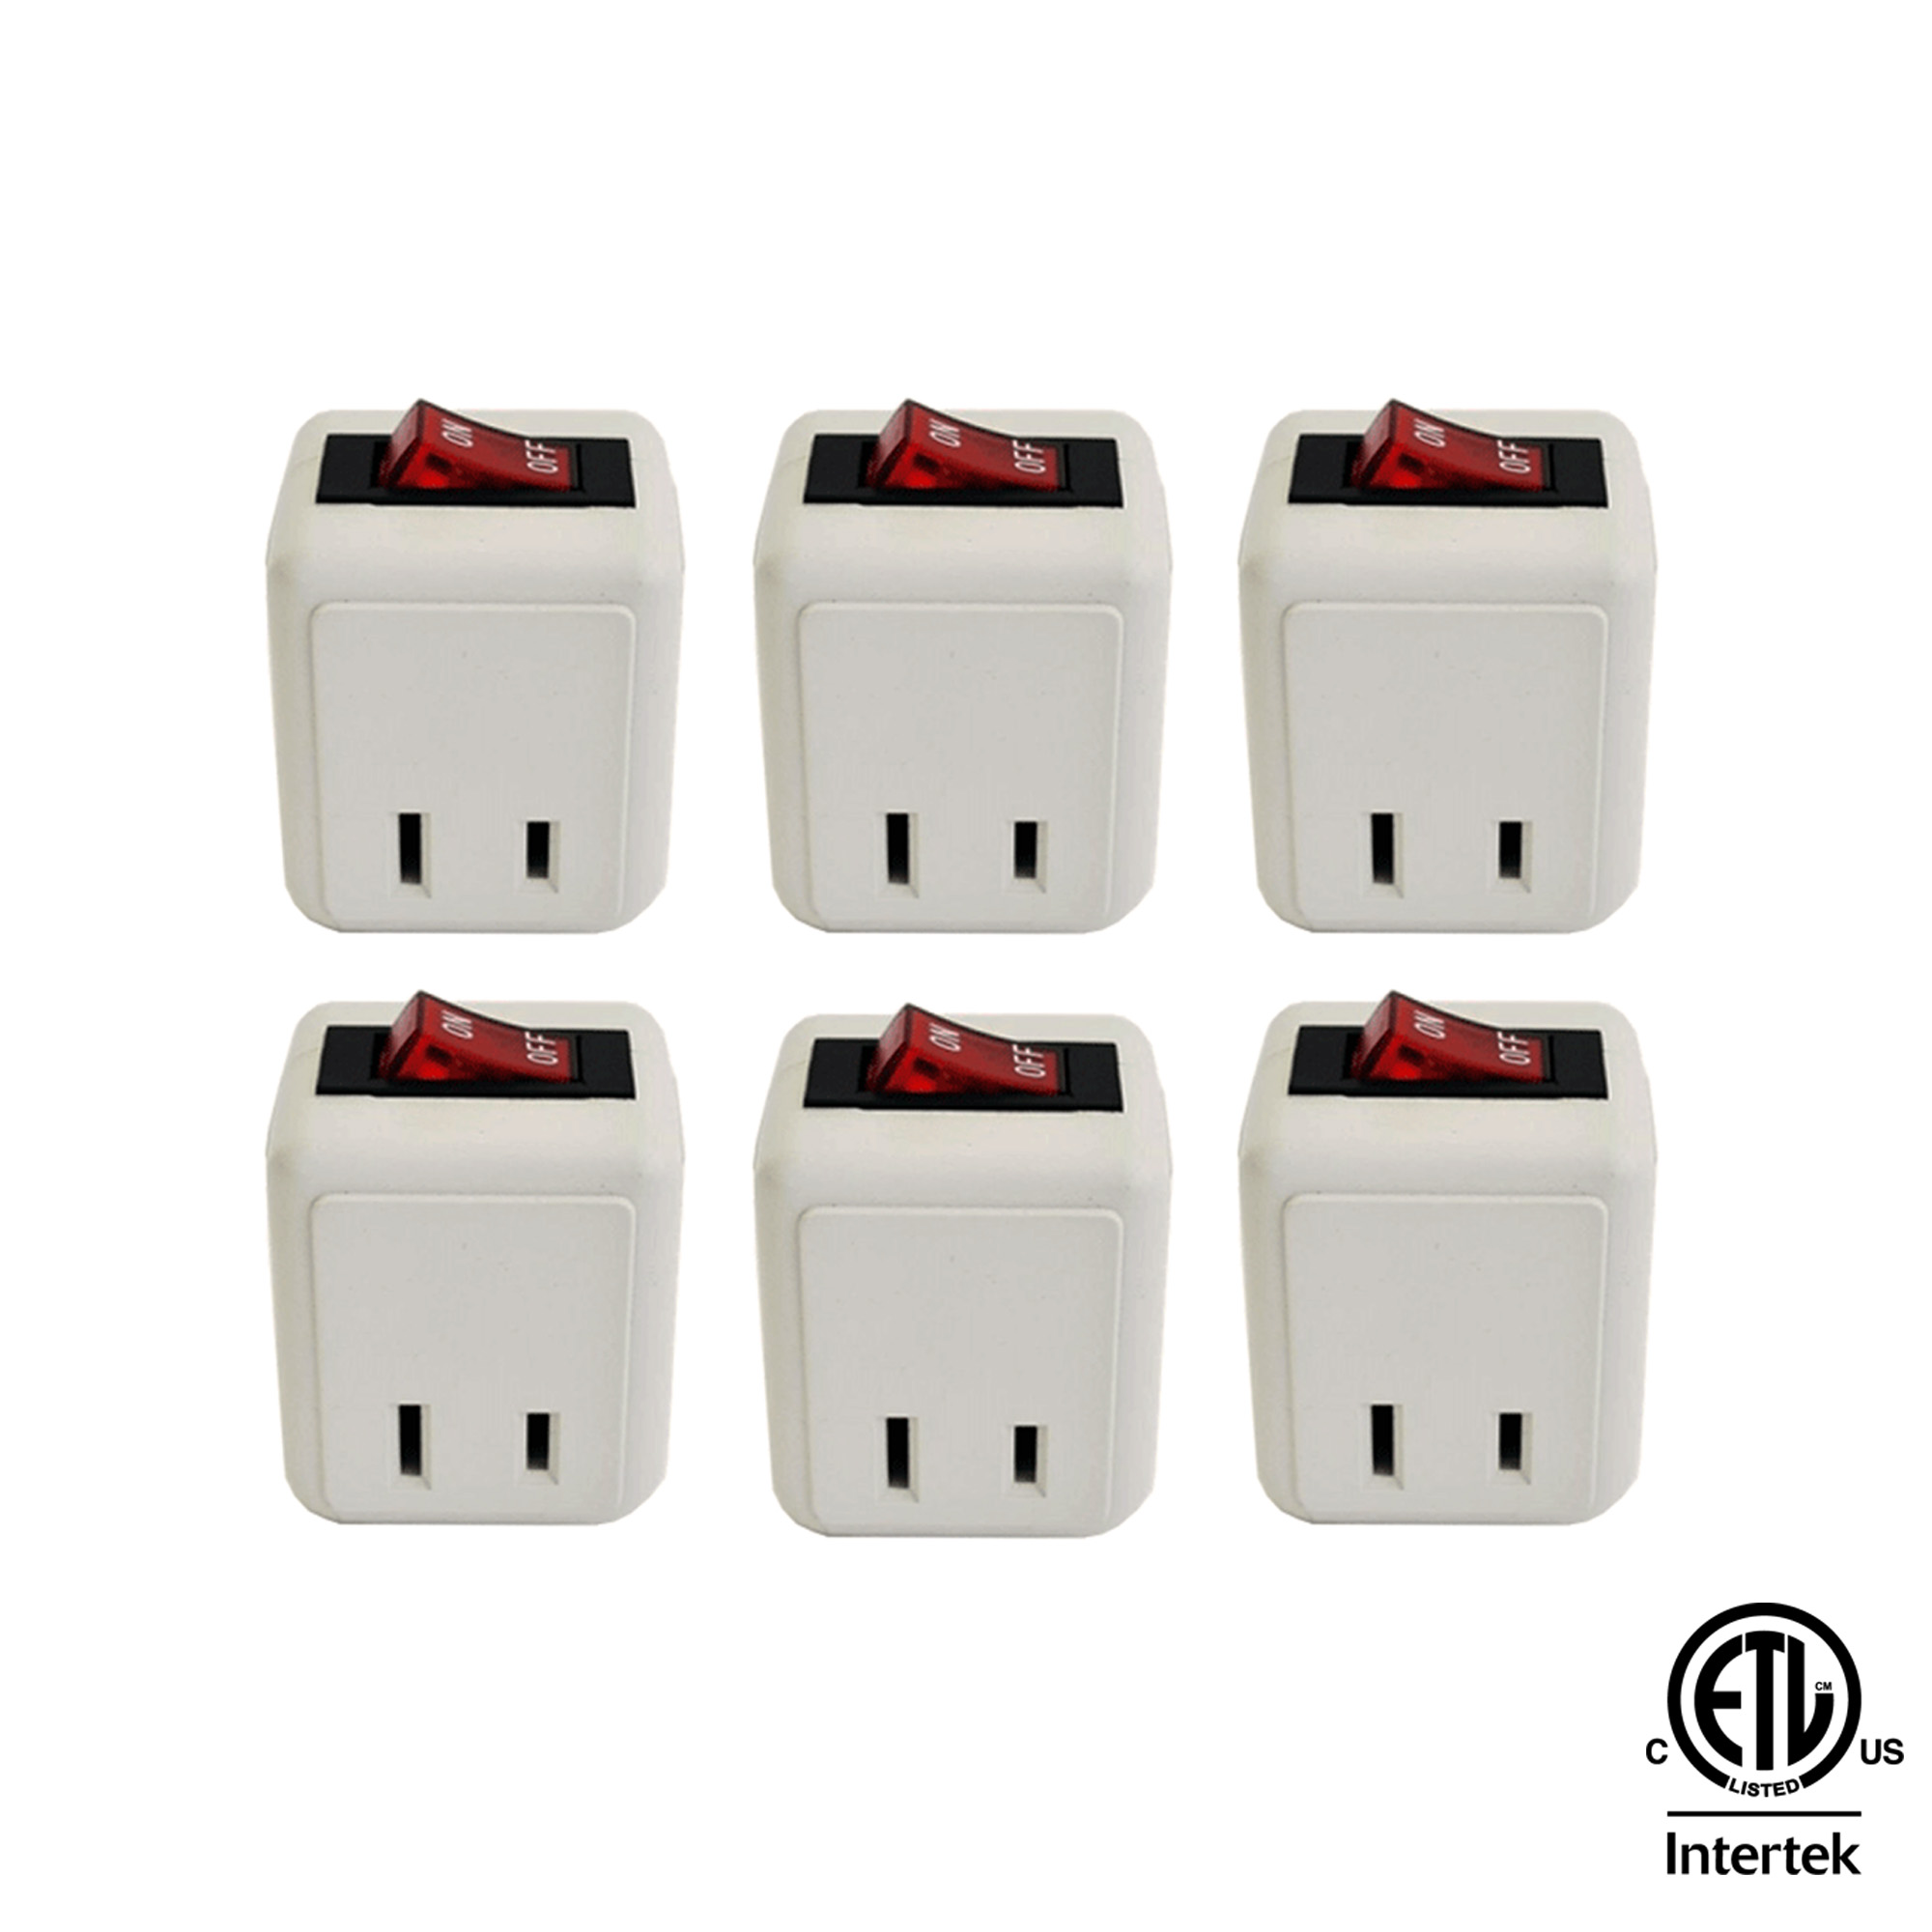 (6-Pack) Uninex Wall Tap Outlet W/Turn ON/OFF Switch Power Adapter 2 prong Plug Without Unplugging Cords ETL